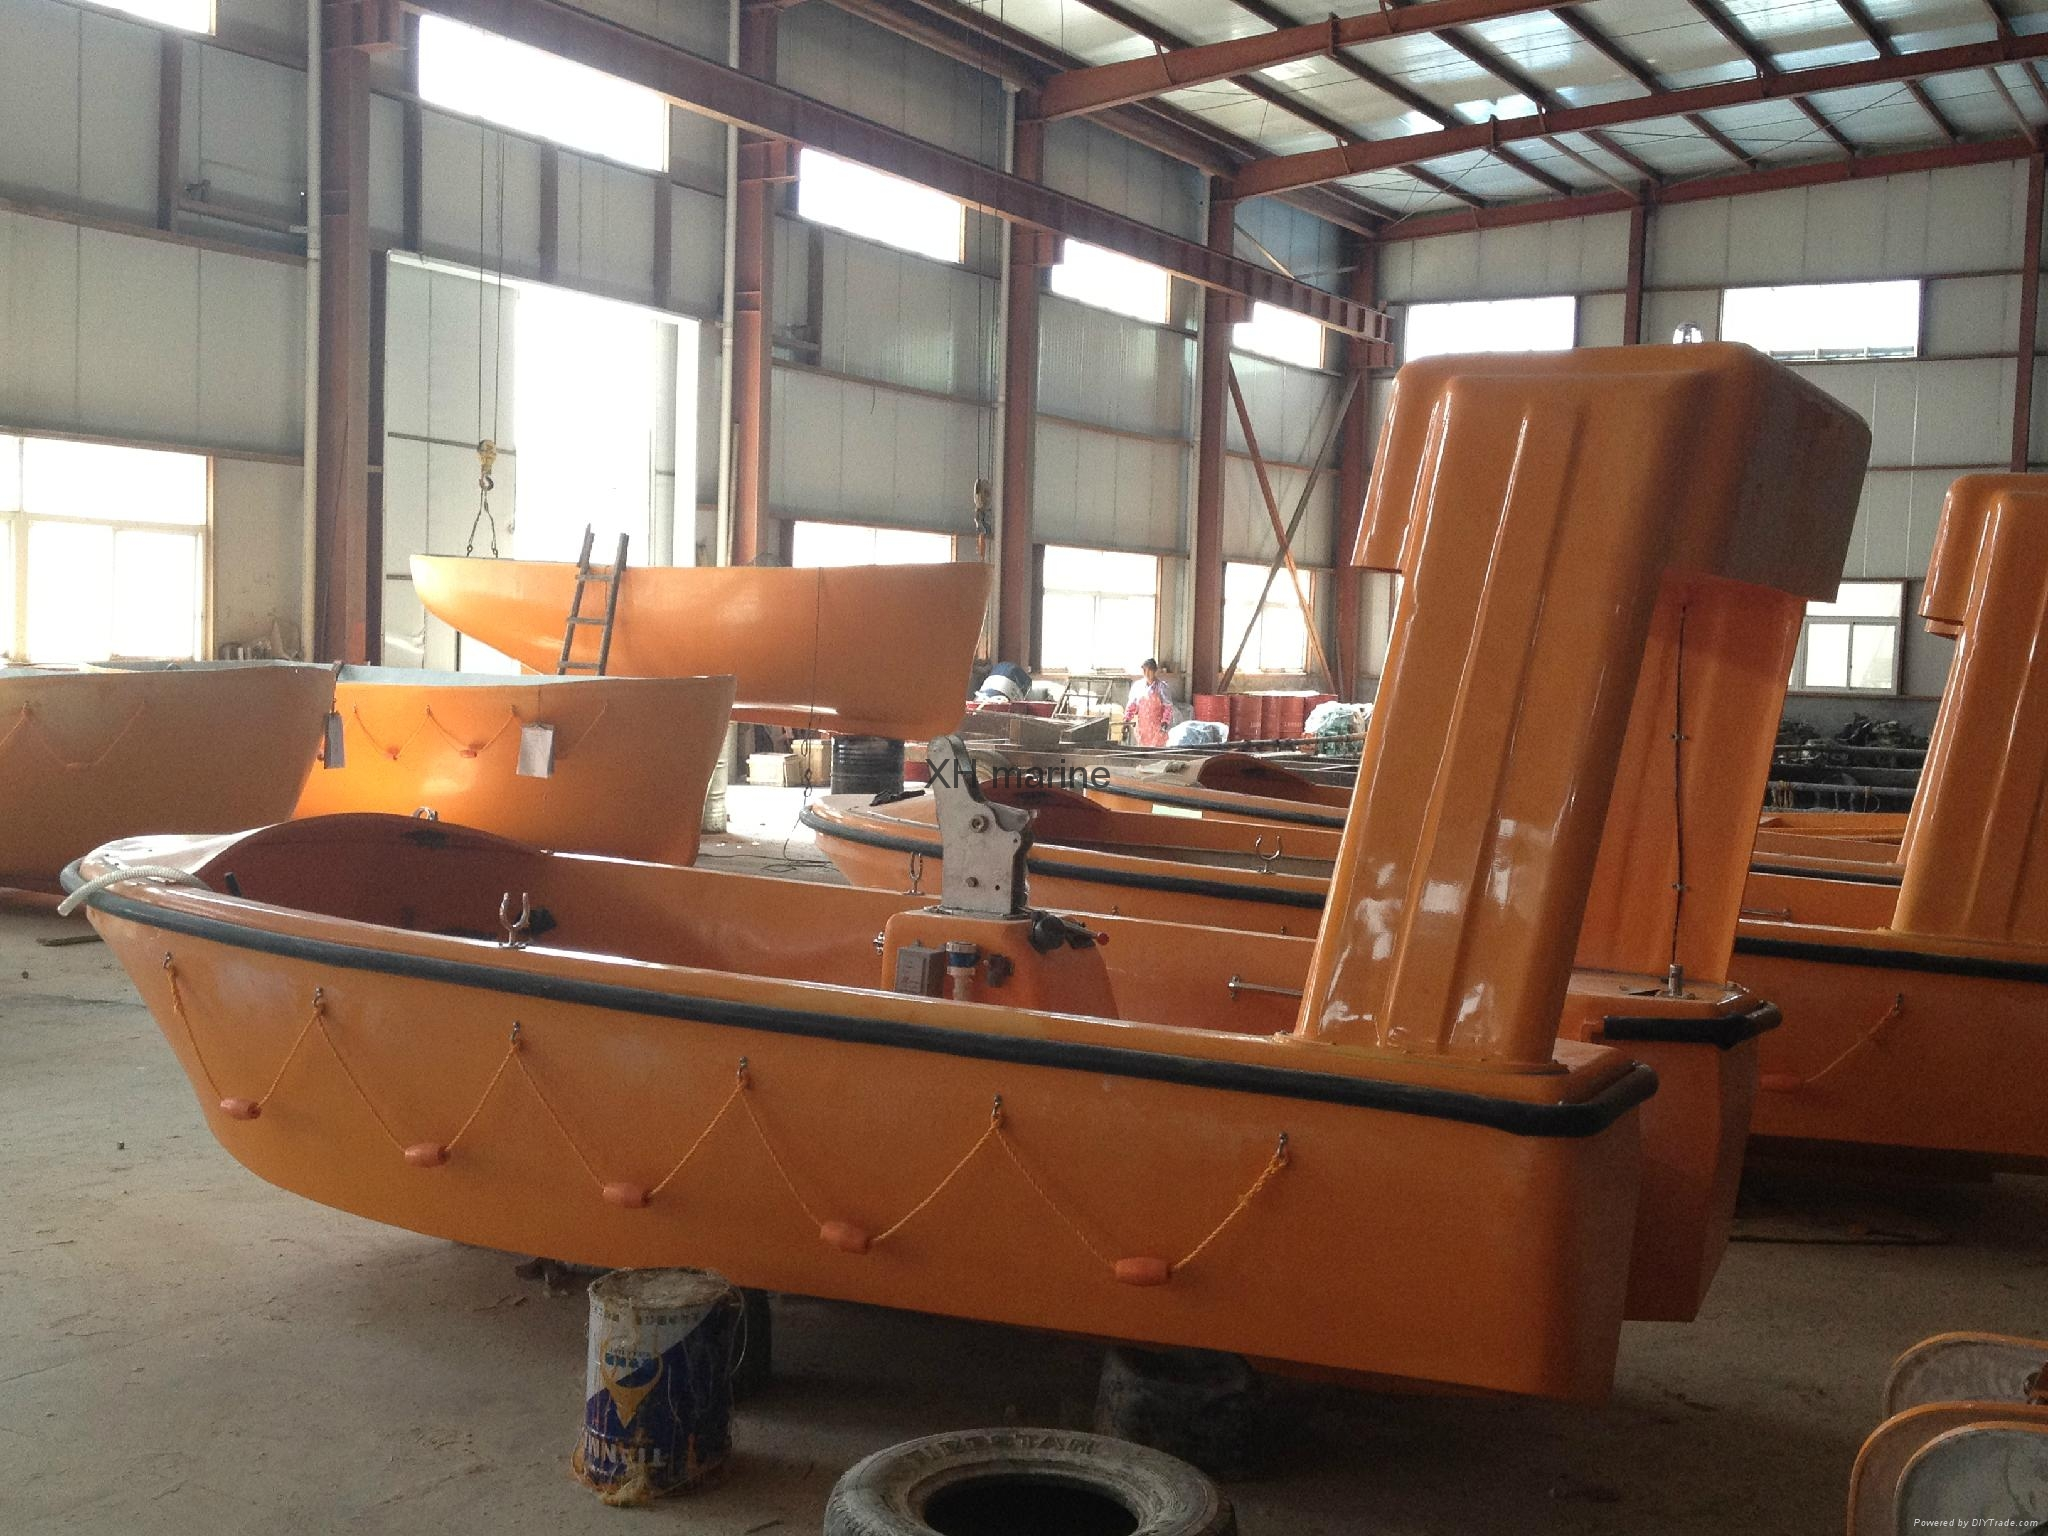 Marine lifesaving equipment rescue life boat ABS approved 5